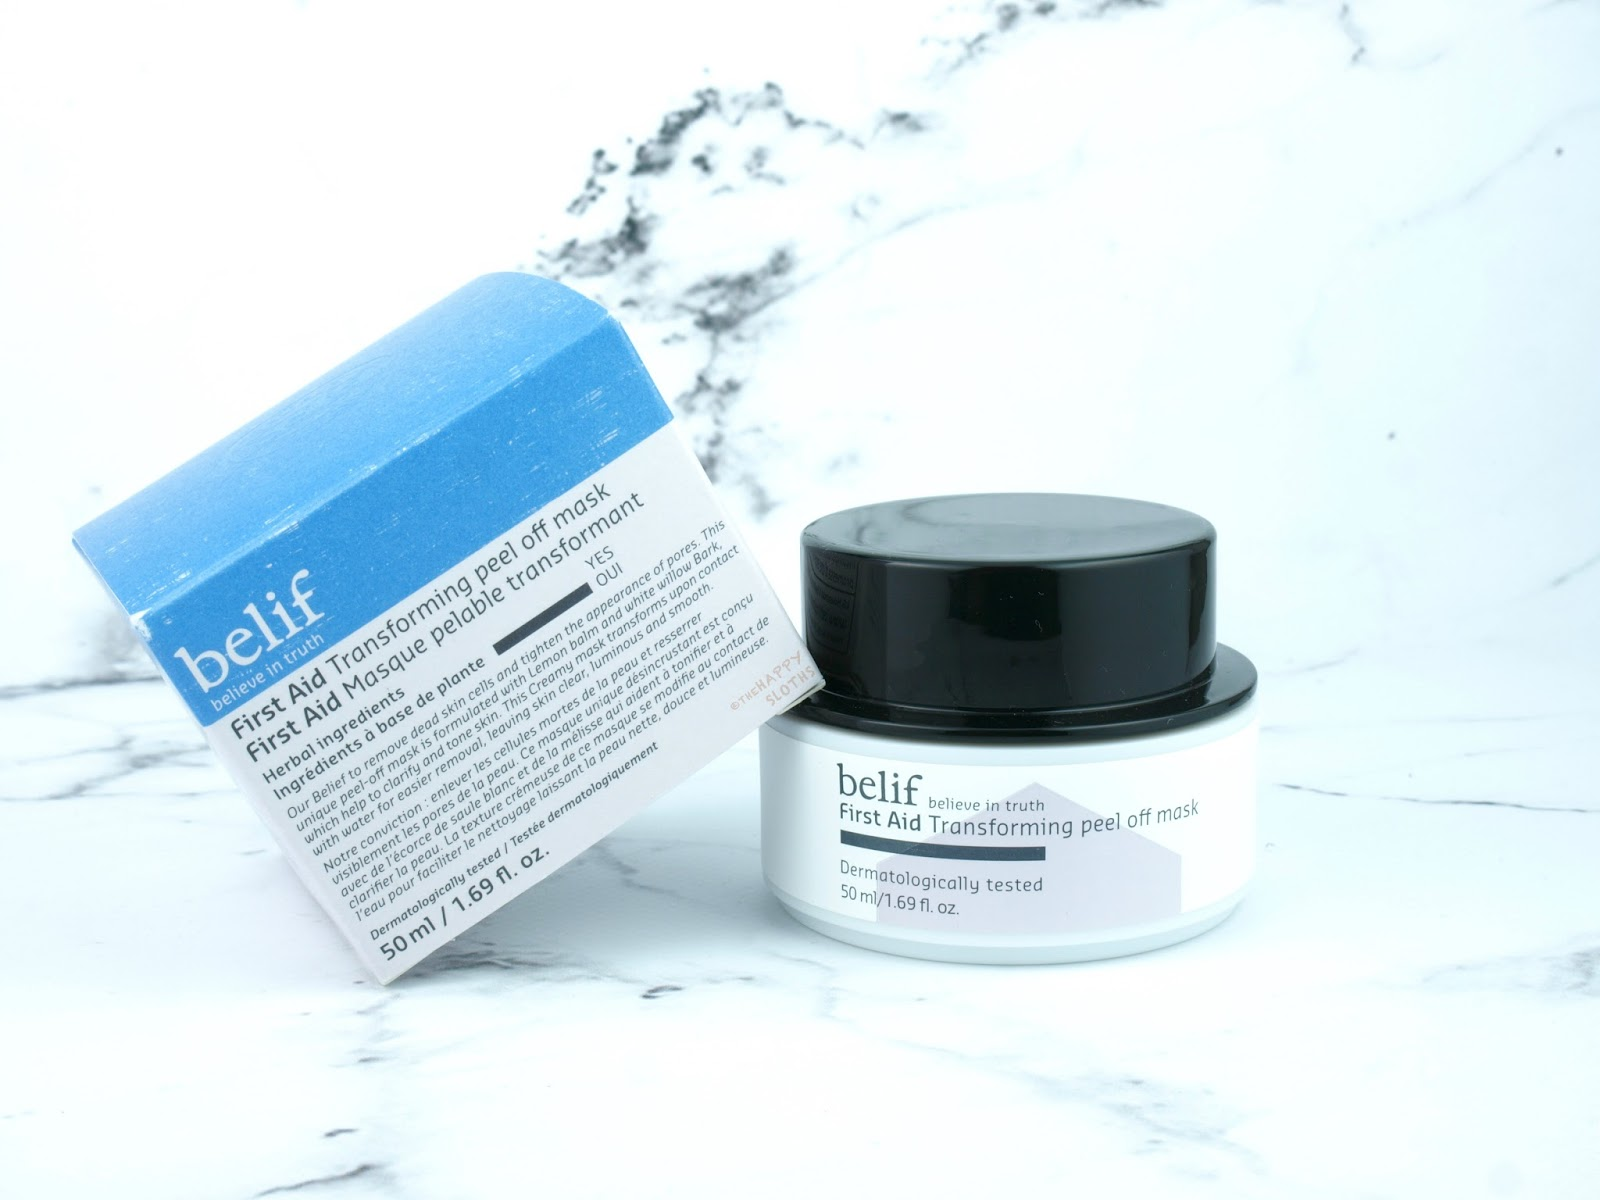 Belif First Aid Transforming Peel Off Mask: Review